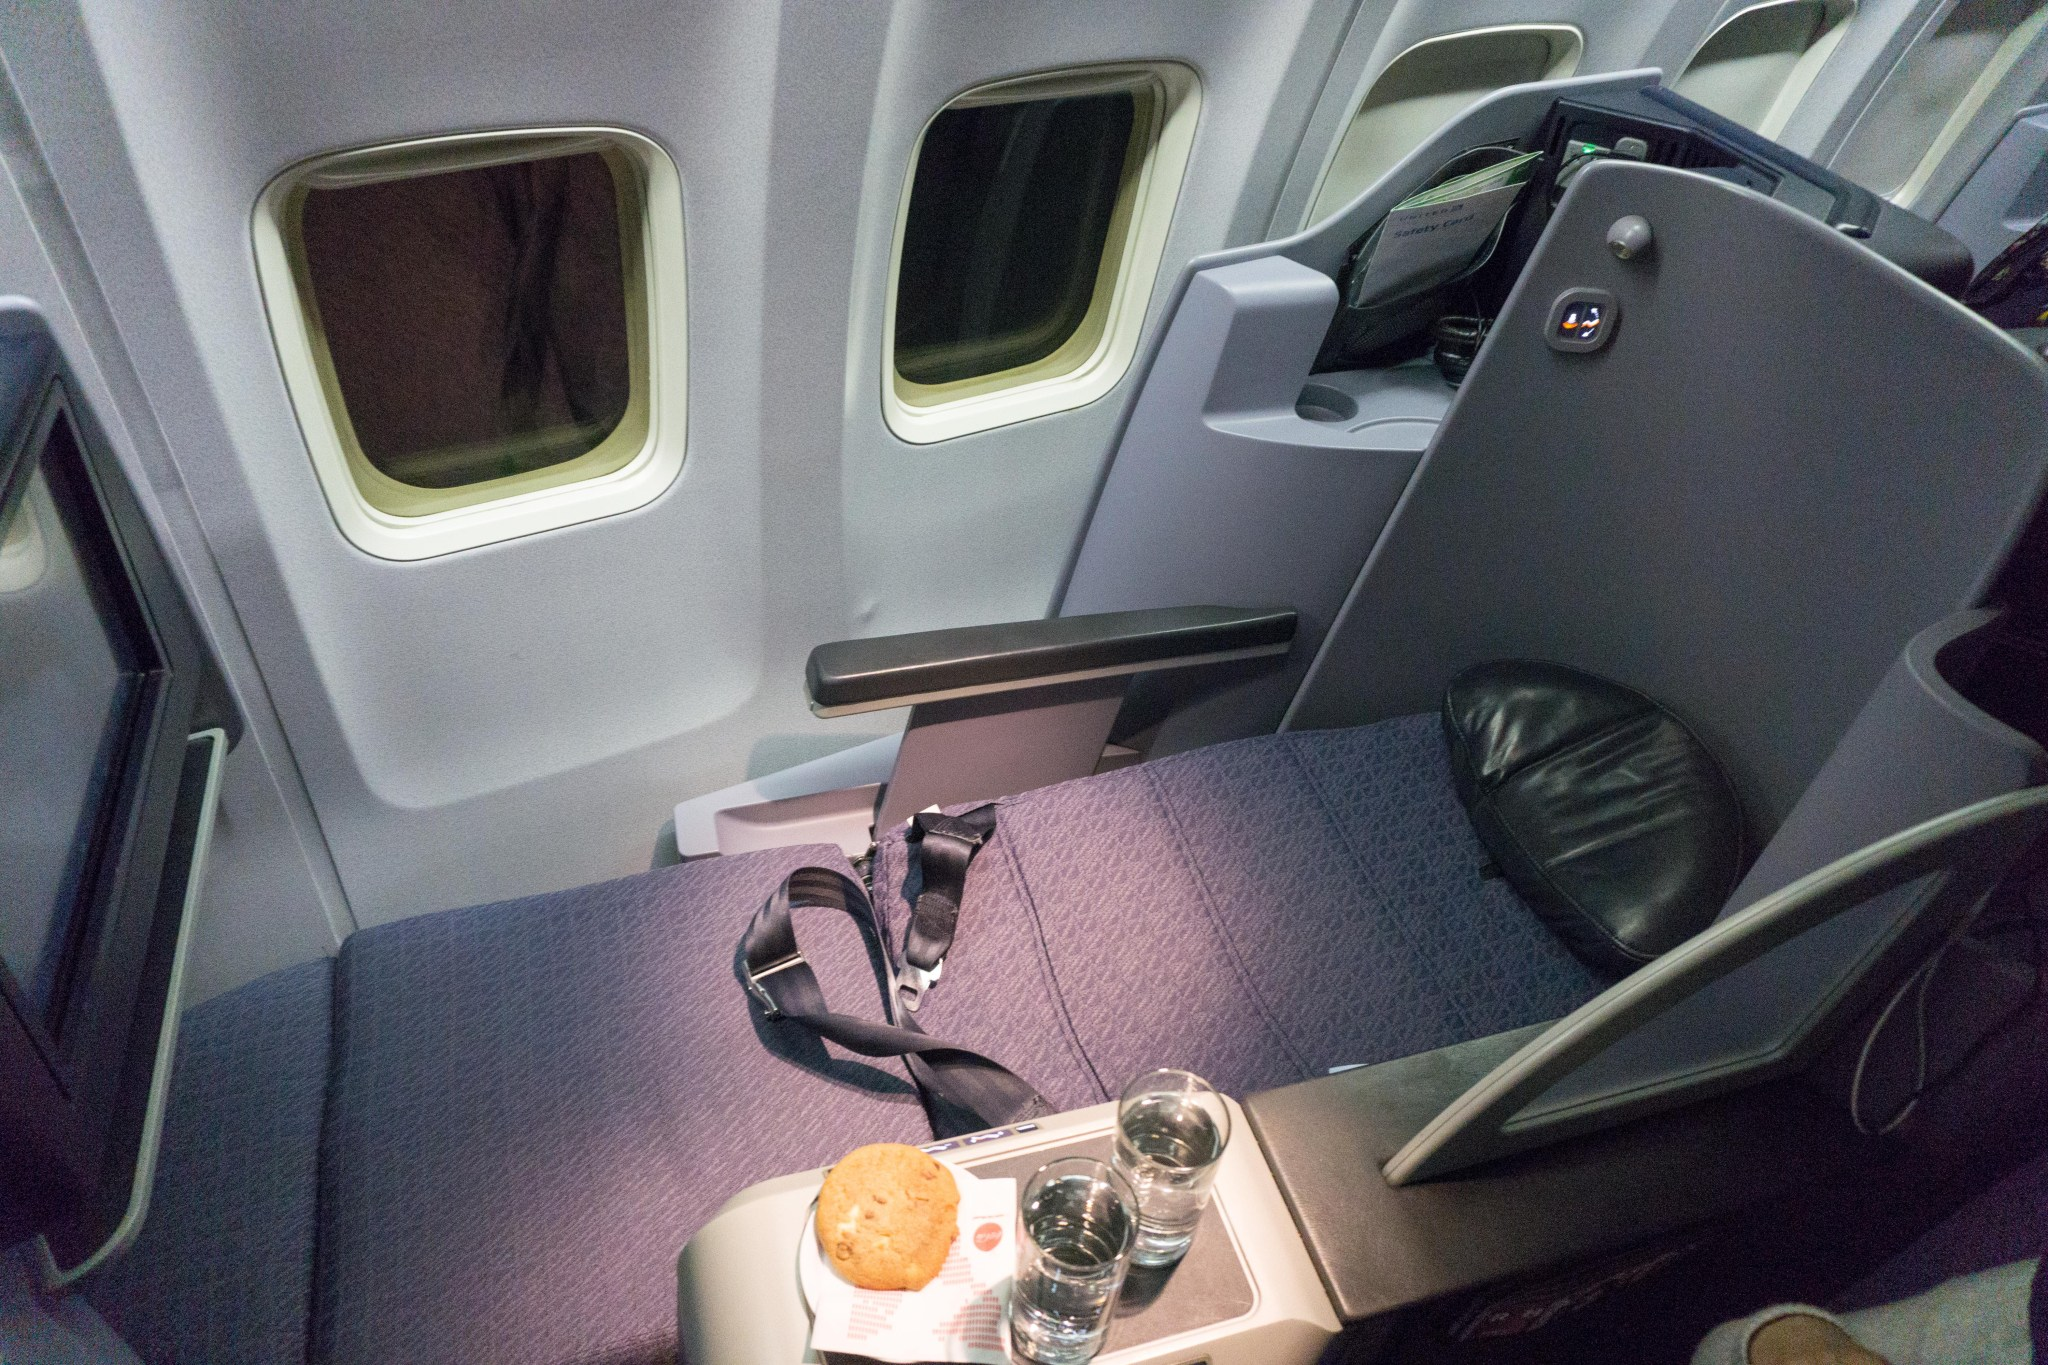 Review: United (757-200) First Class From Newark to Seattle